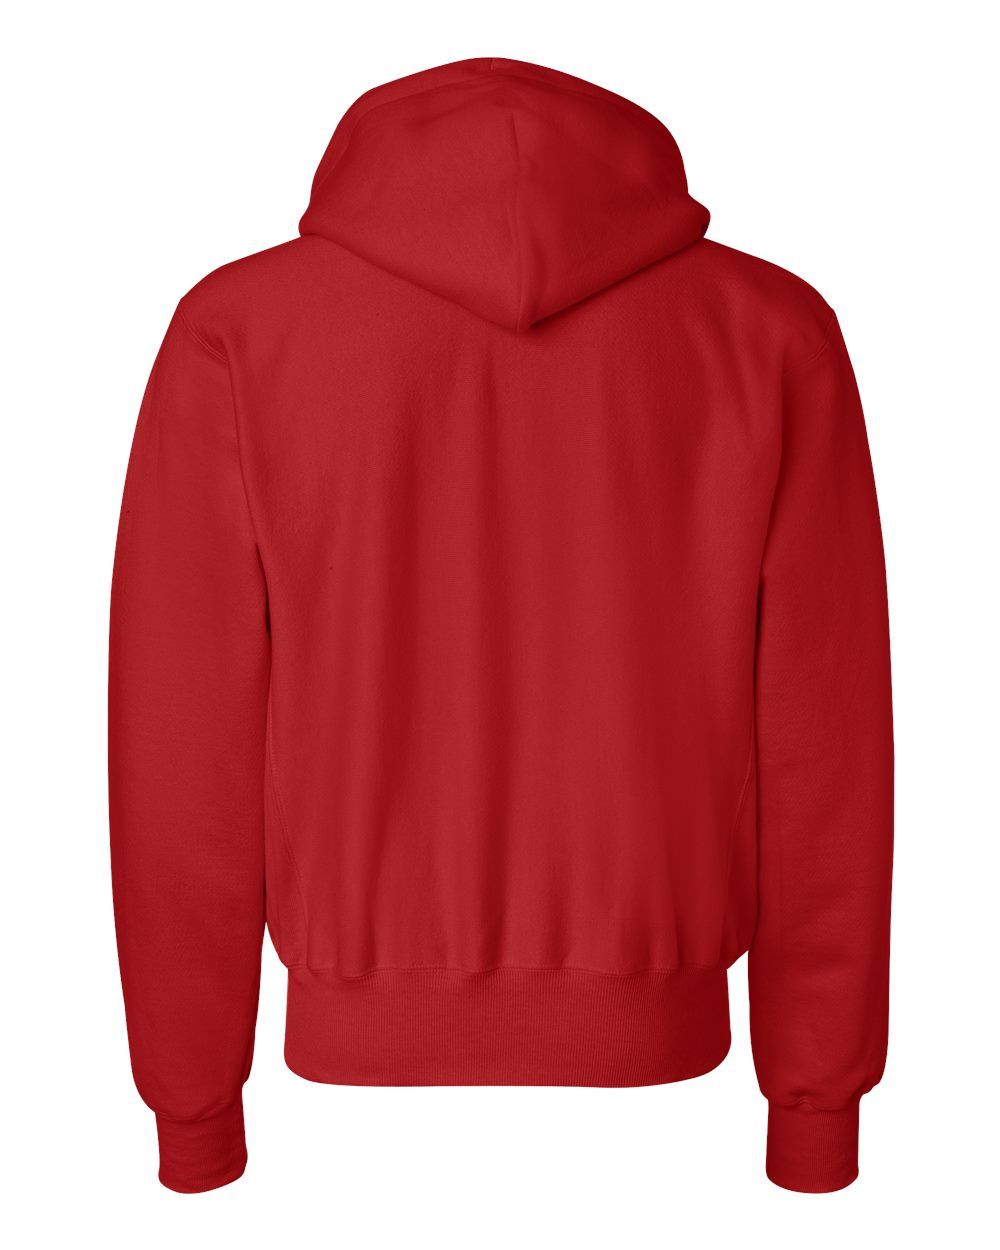 Champion-Mens-Reverse-Weave-Hooded-Pullover-Sweatshirt-S101-up-to-3XL thumbnail 43